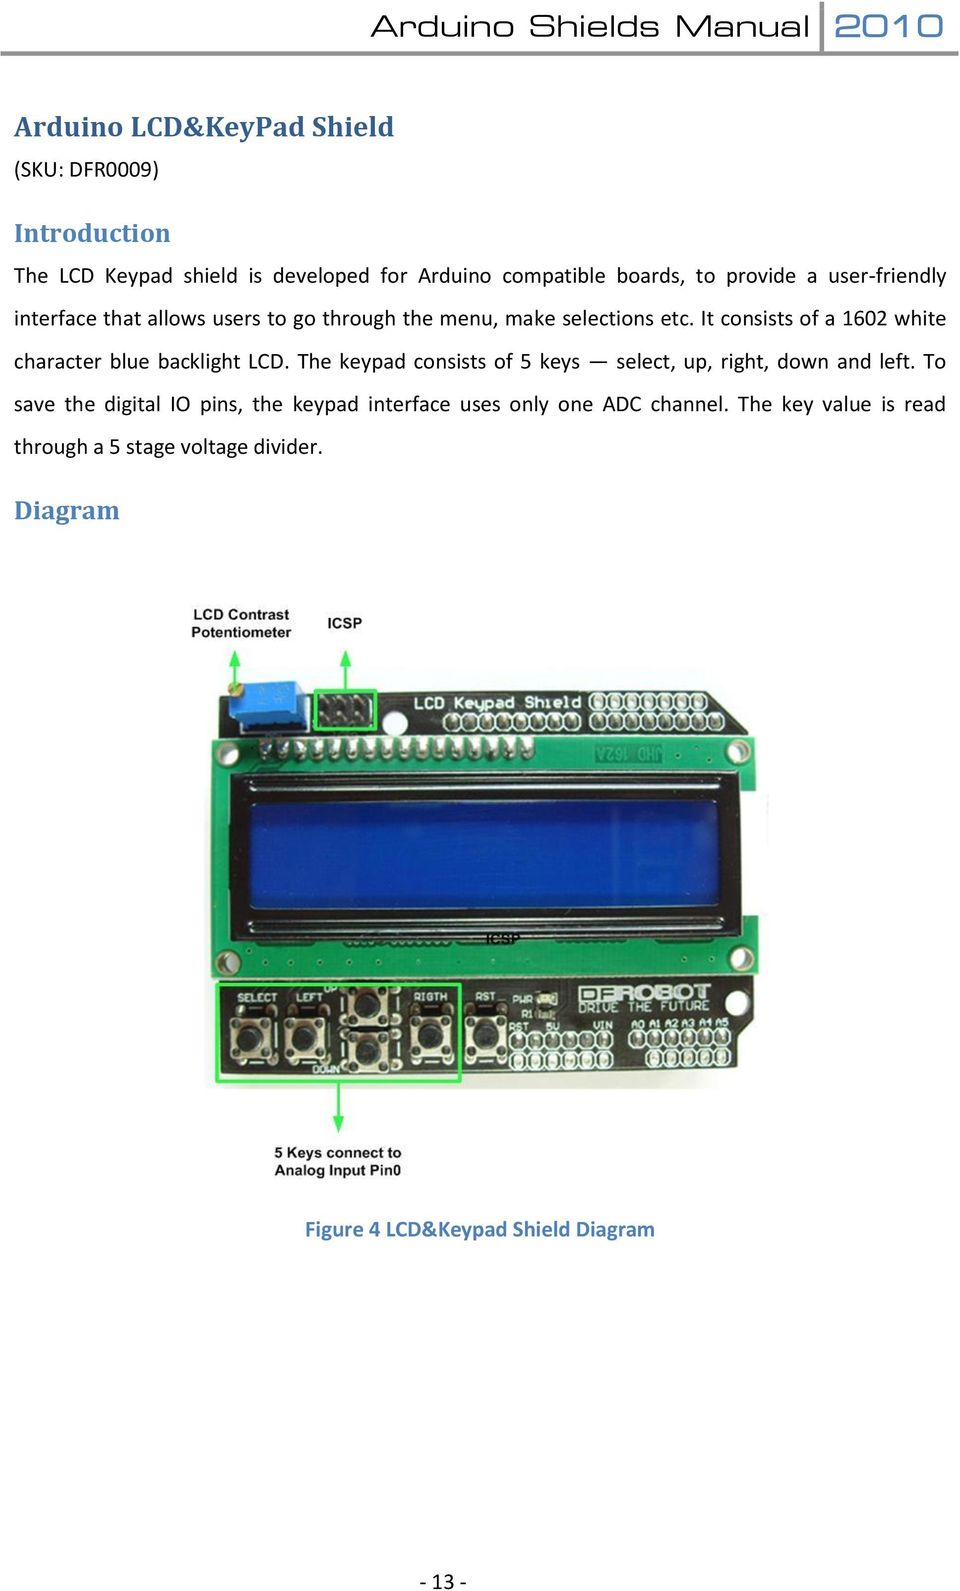 Arduino Shield Manual Pdf Circuit Diagram To Interface Buzzer With Lpc2148 Arm7 Slicker It Consists Of A 1602 White Character Blue Backlight Lcd The Keypad 5